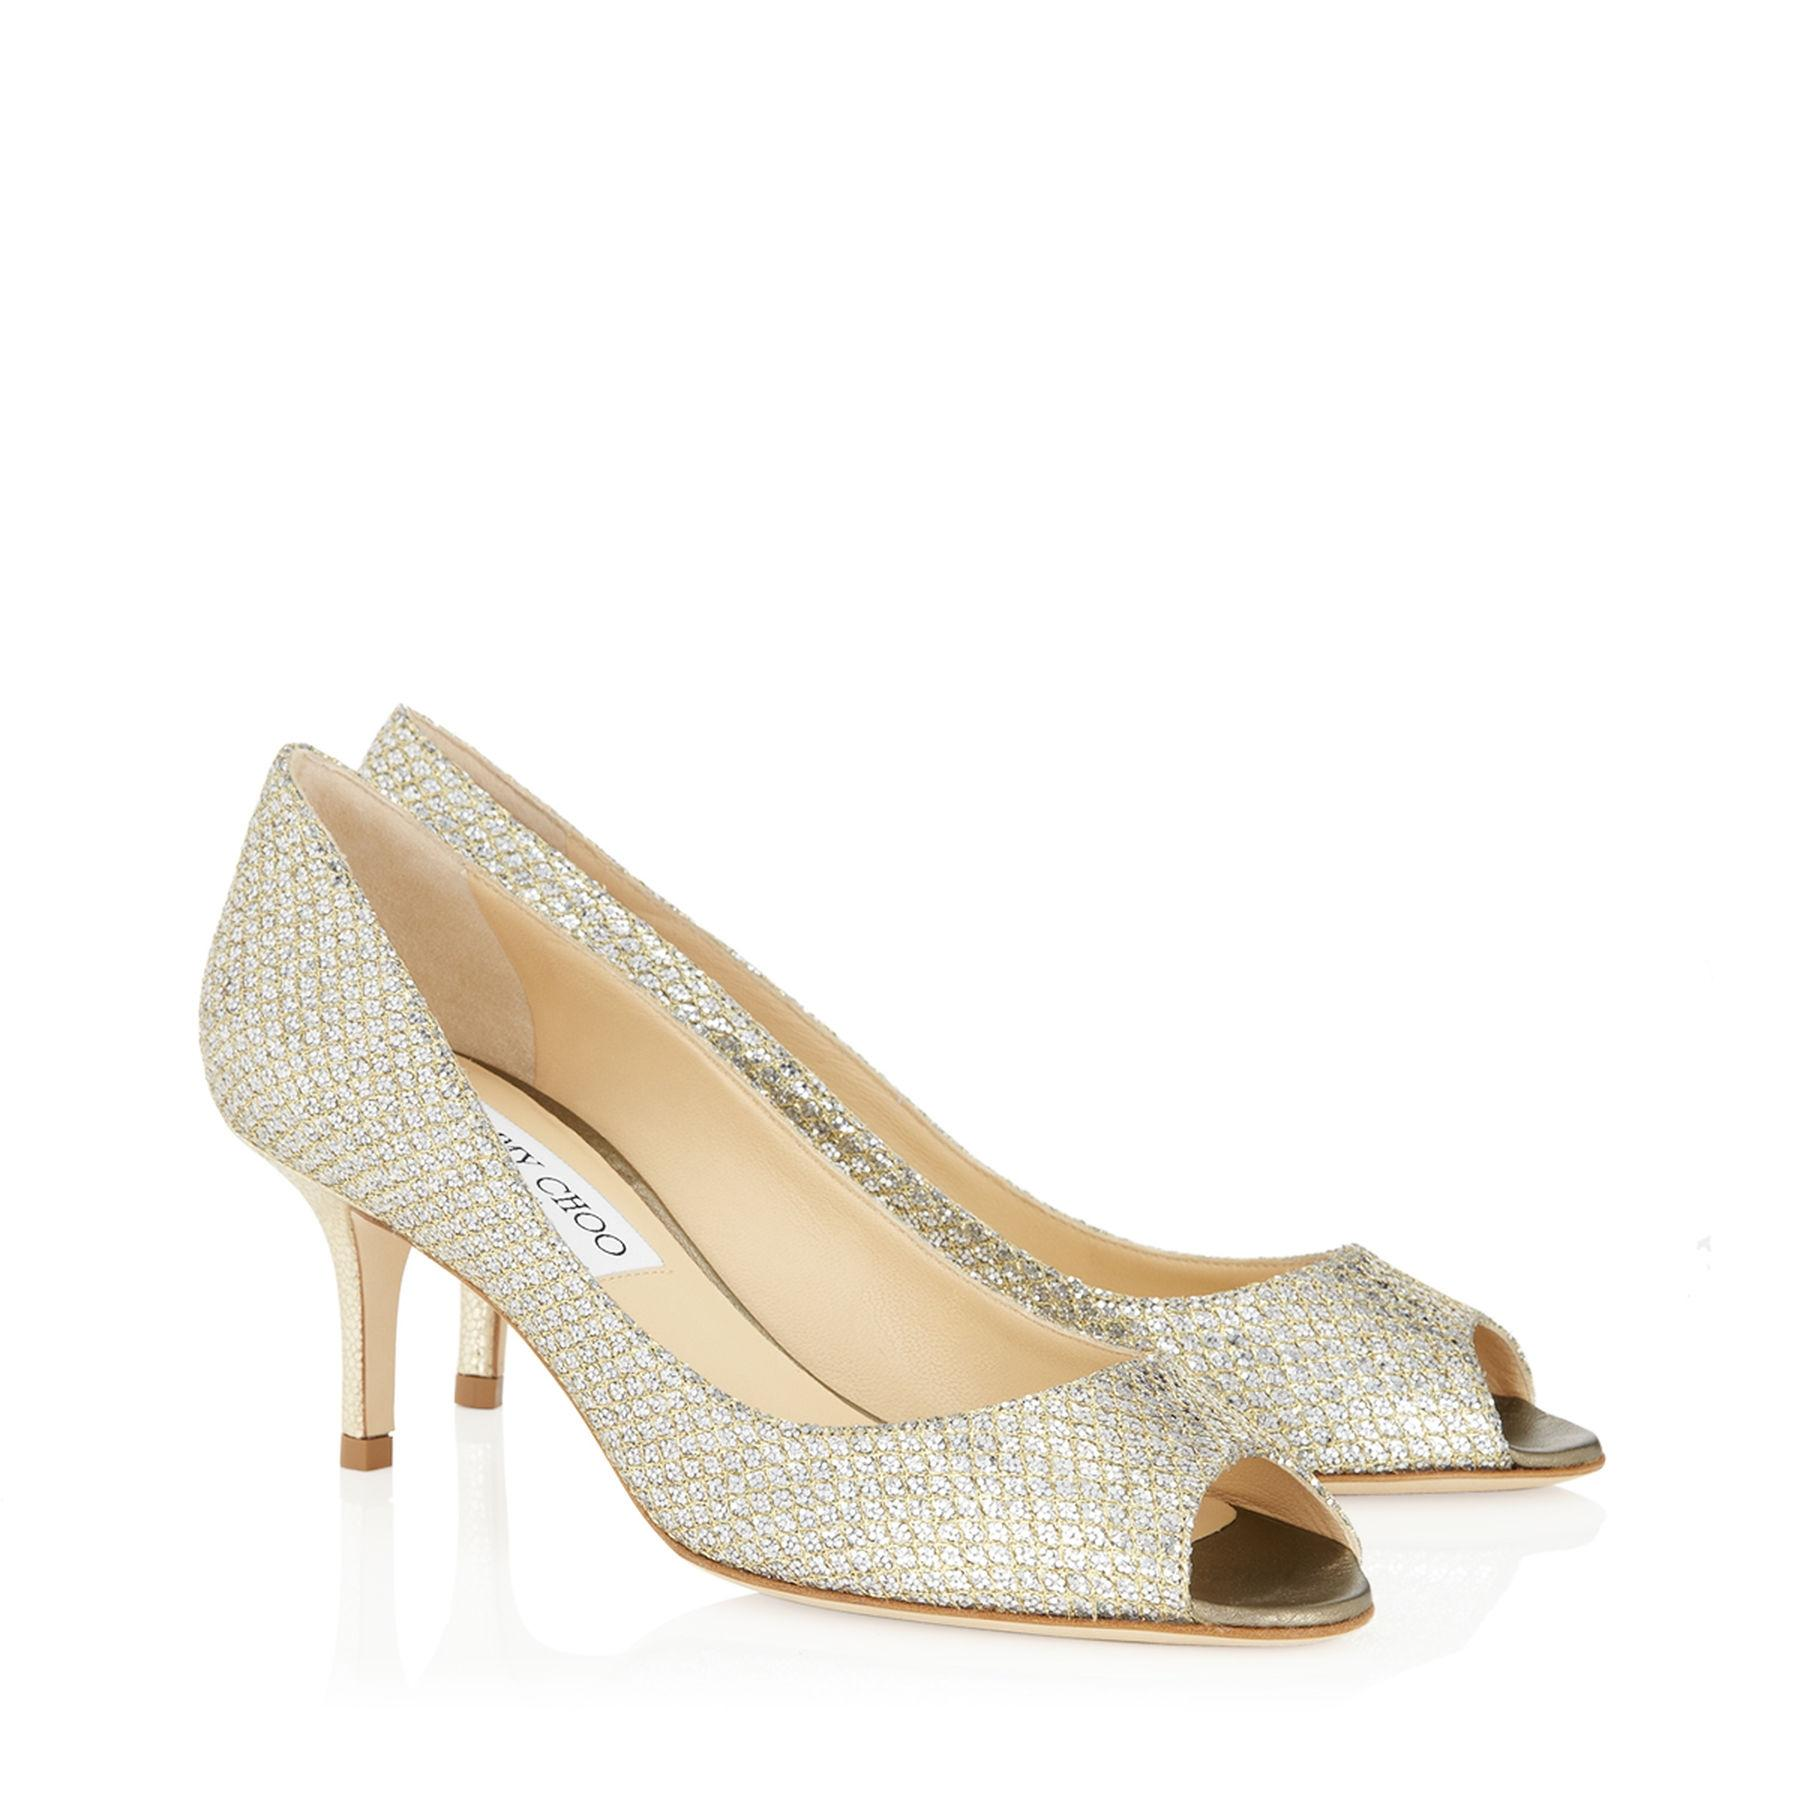 23580170d56 discount code for jimmy choo sparkly pumps 3e238 2b7c4